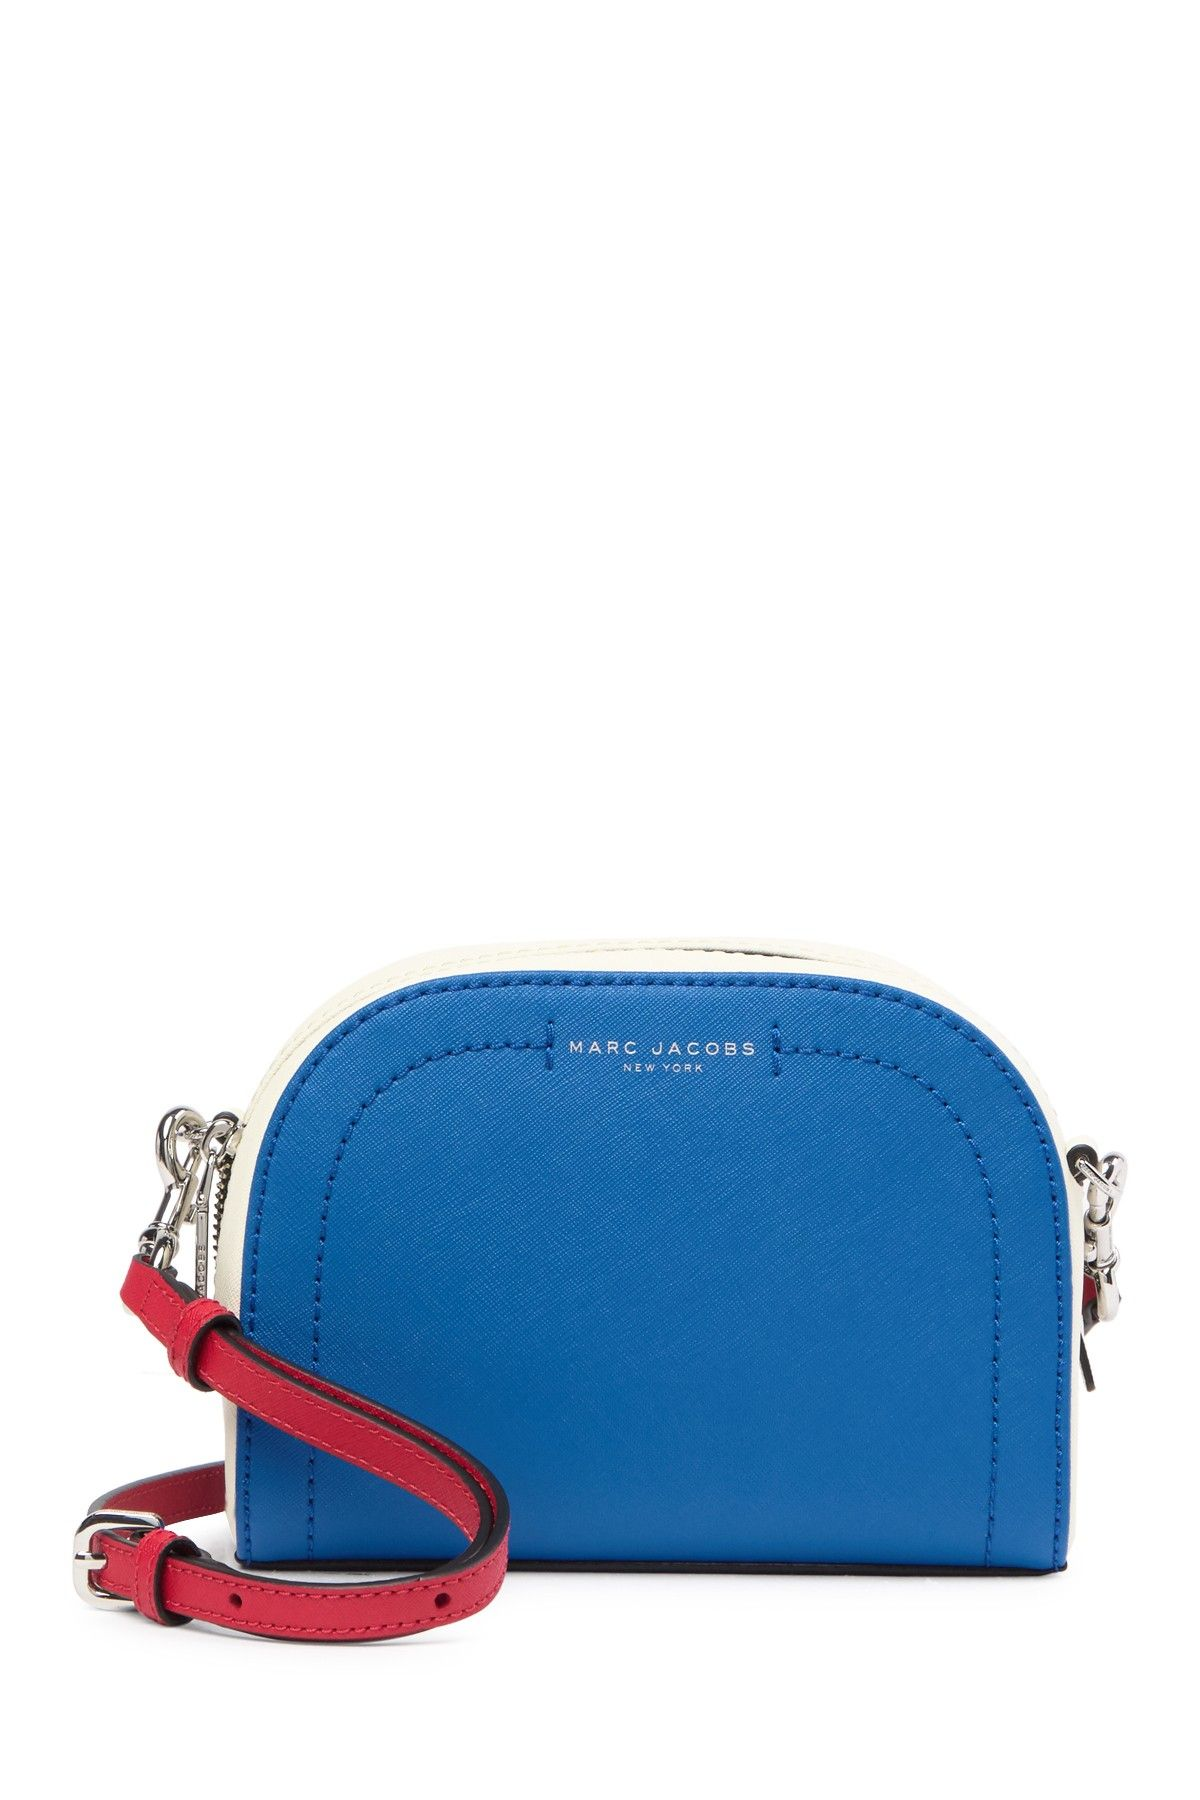 f9f7d7fa14 Marc Jacobs - Playback Colorblocked Leather Crossbody Bag is now 65% off.  Free Shipping on orders over $100.